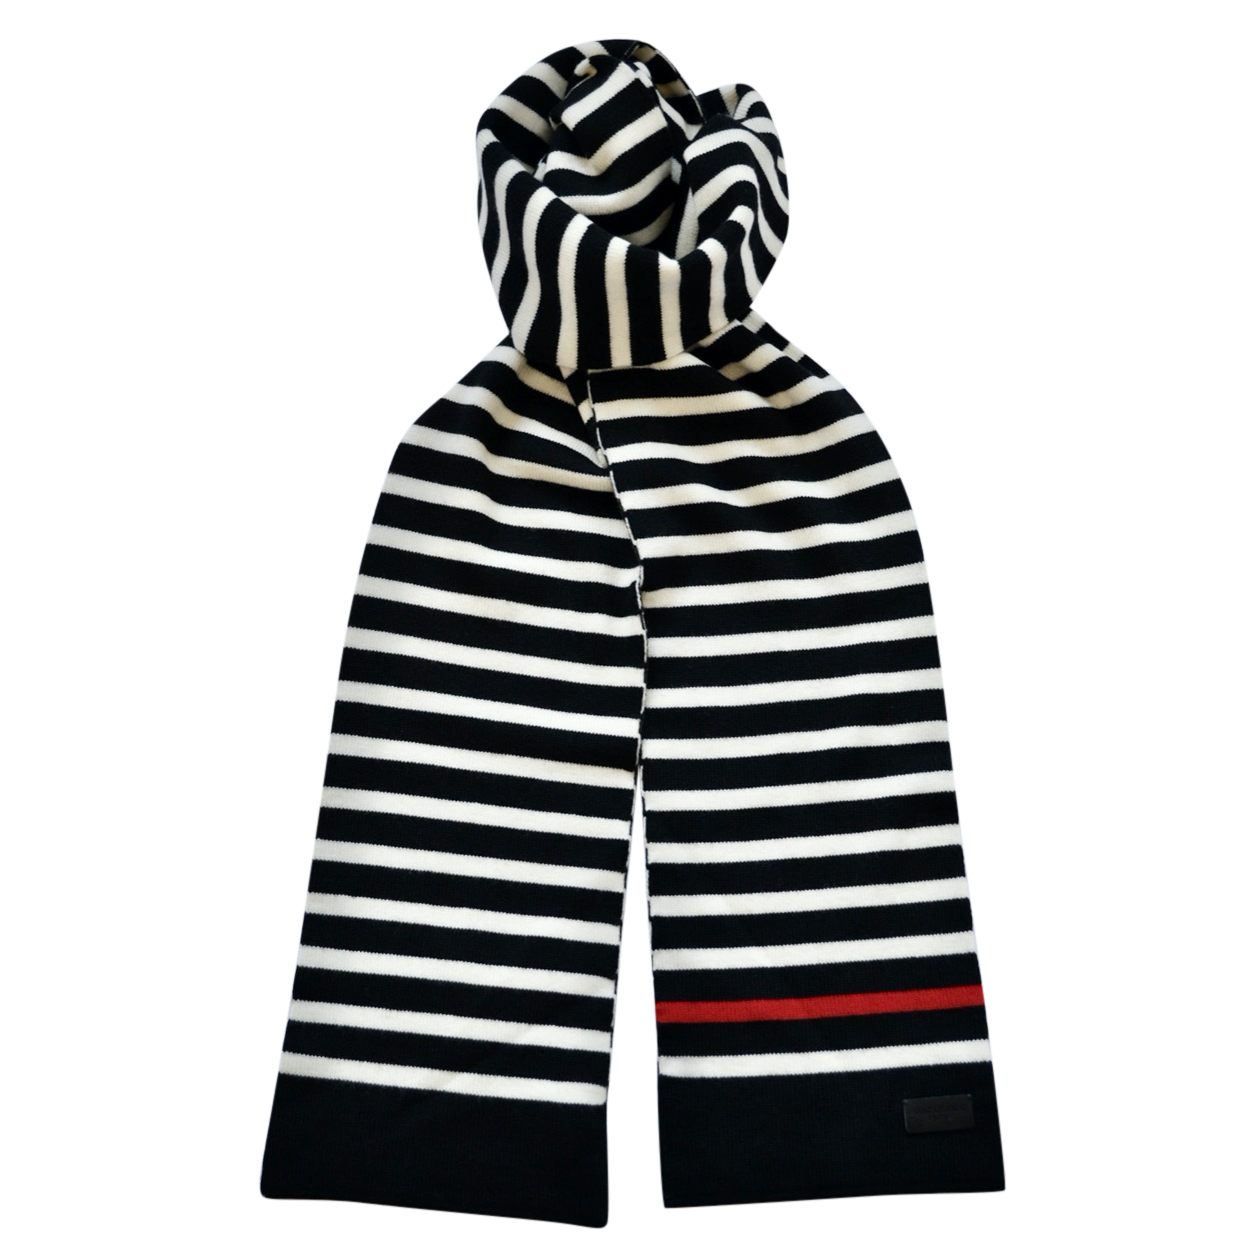 Saint Laurent Black & White Striped Wool Scarf